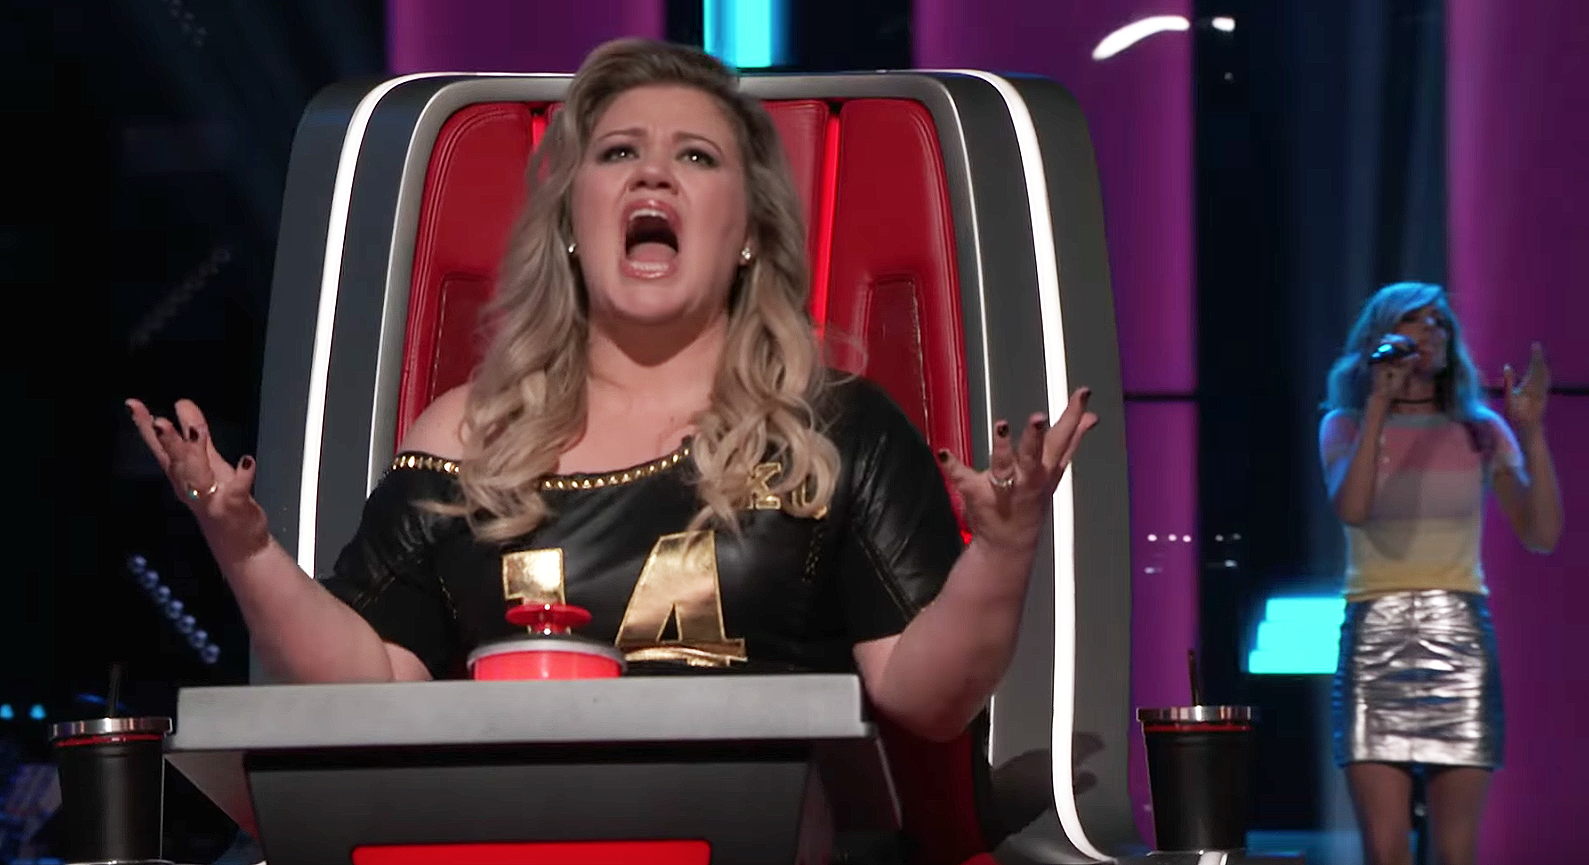 Kelly Clarkson Opens Up About Her Decision to Spank Her Two Kids Kelly Clarkson Opens Up About Her Decision to Spank Her Two Kids new photo